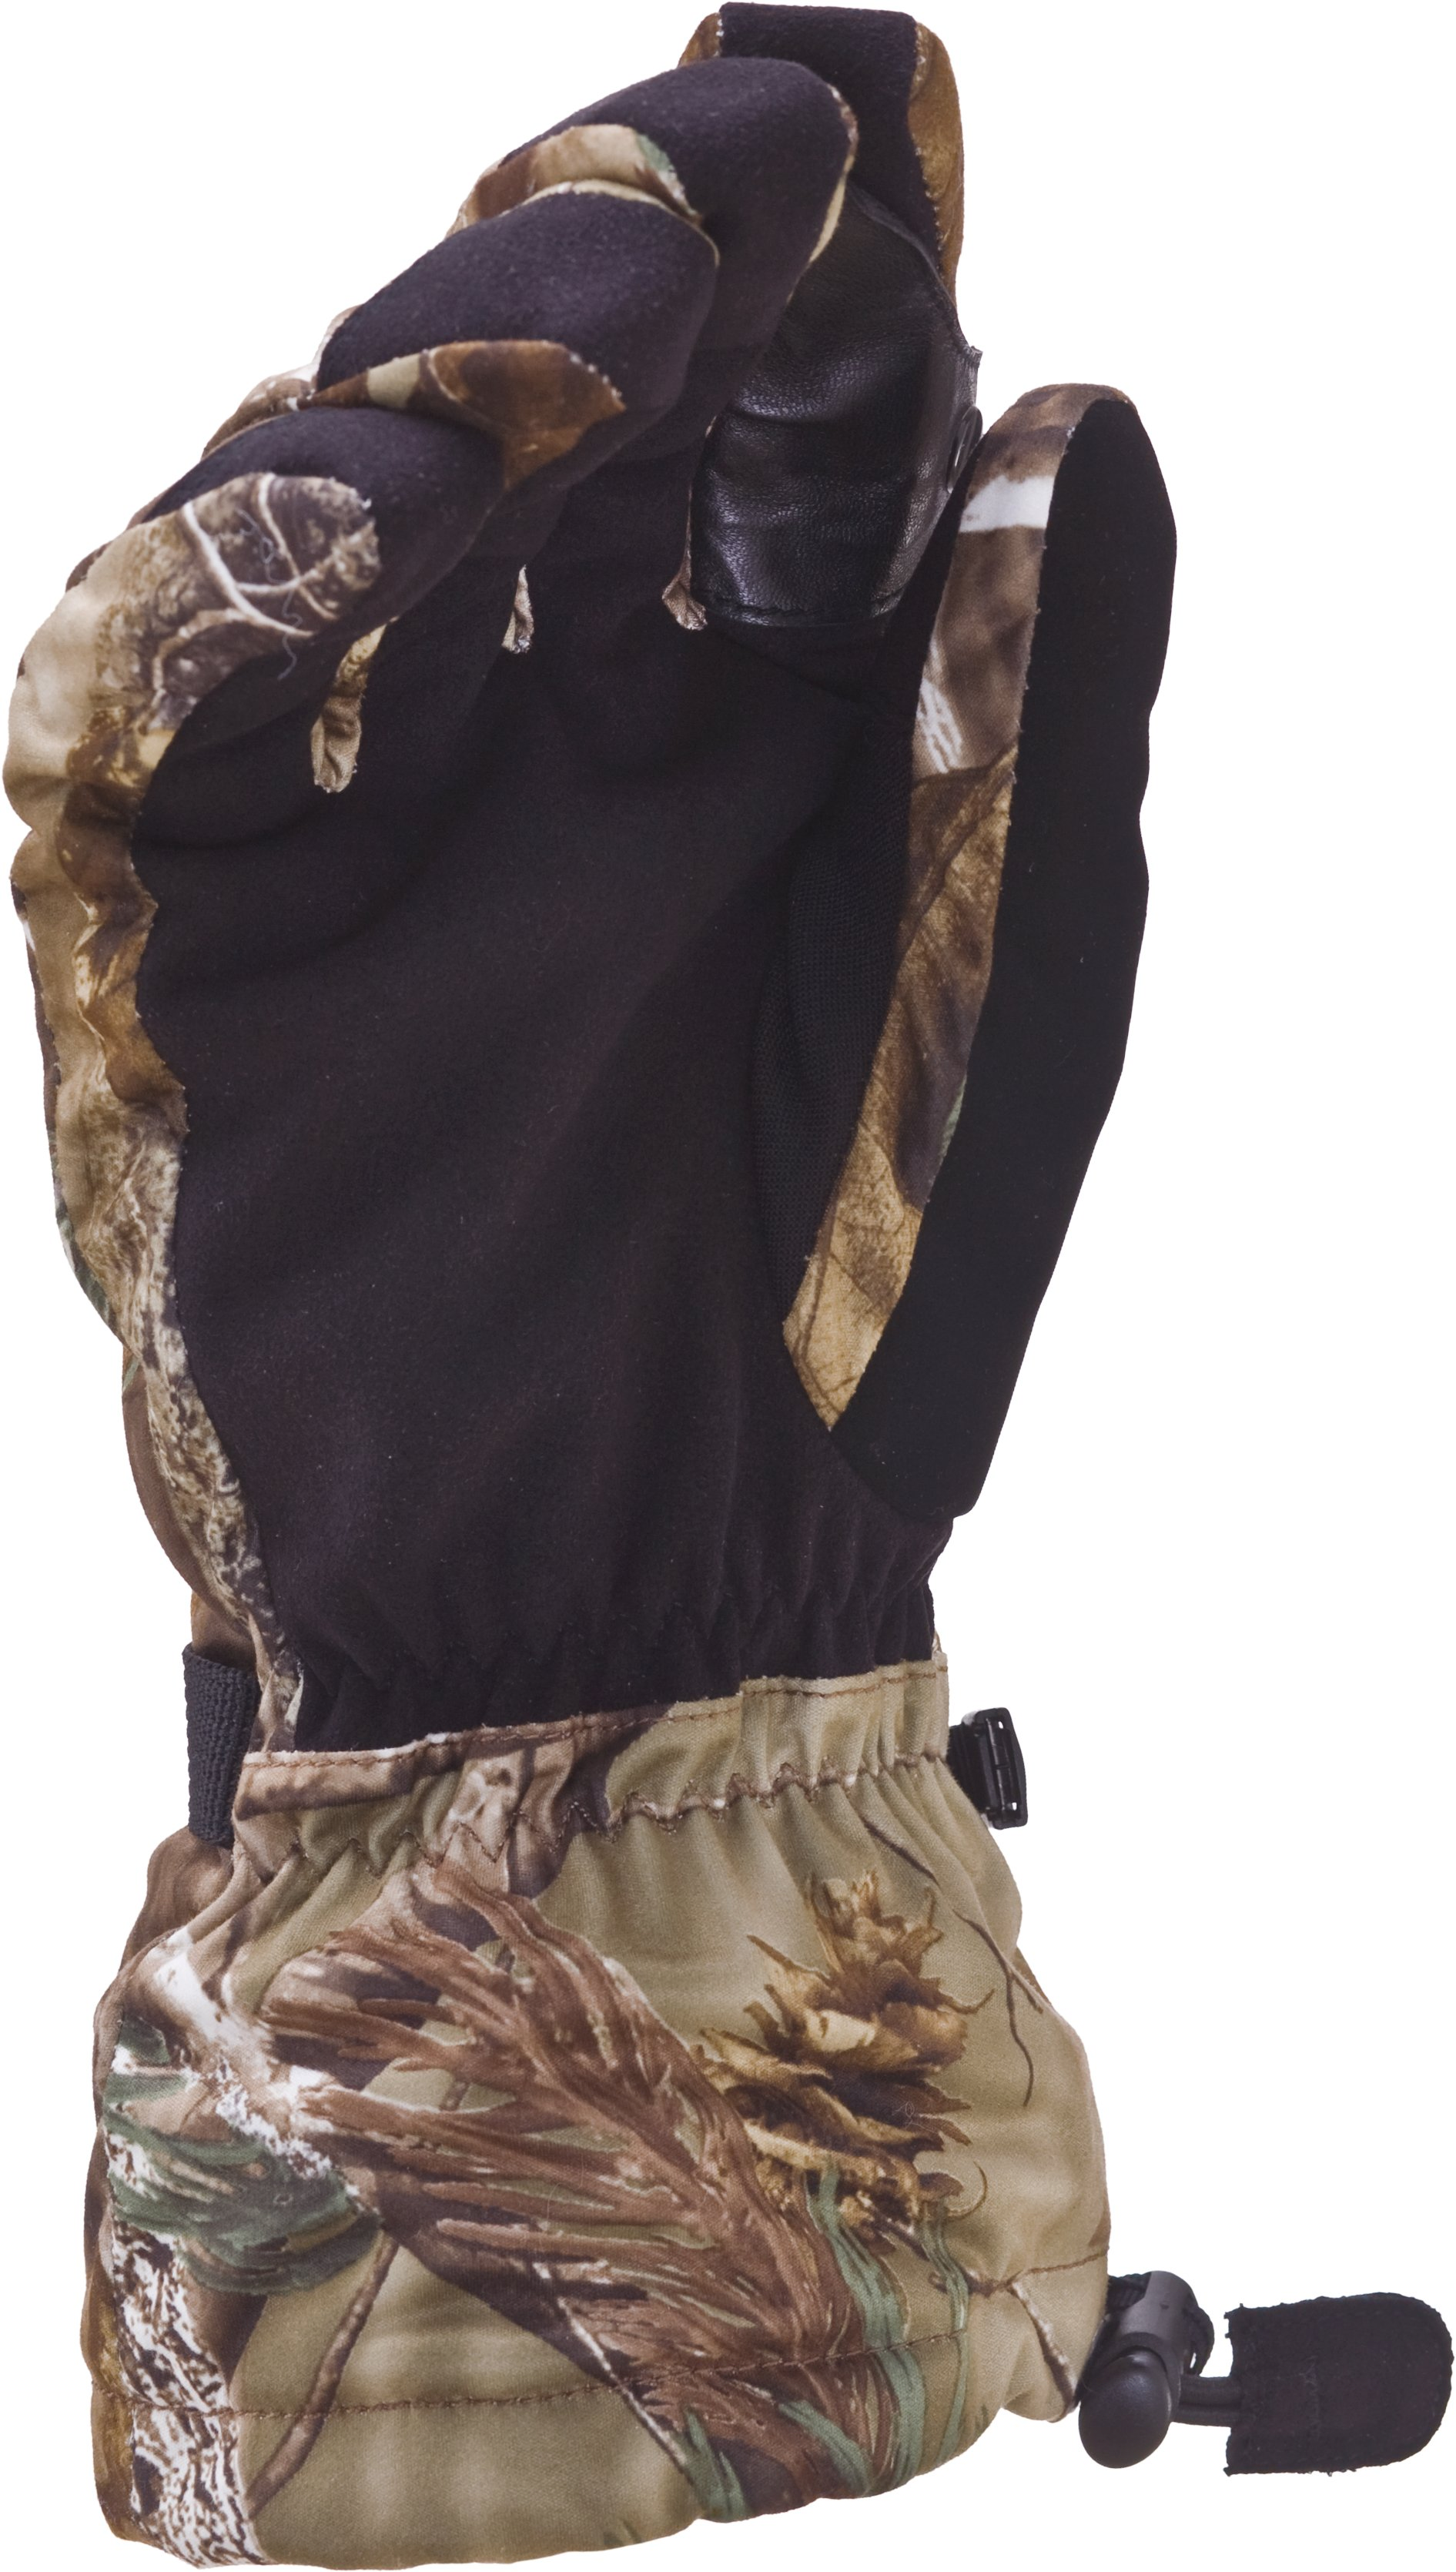 Camo Insulated Shooting Gloves, Realtree AP